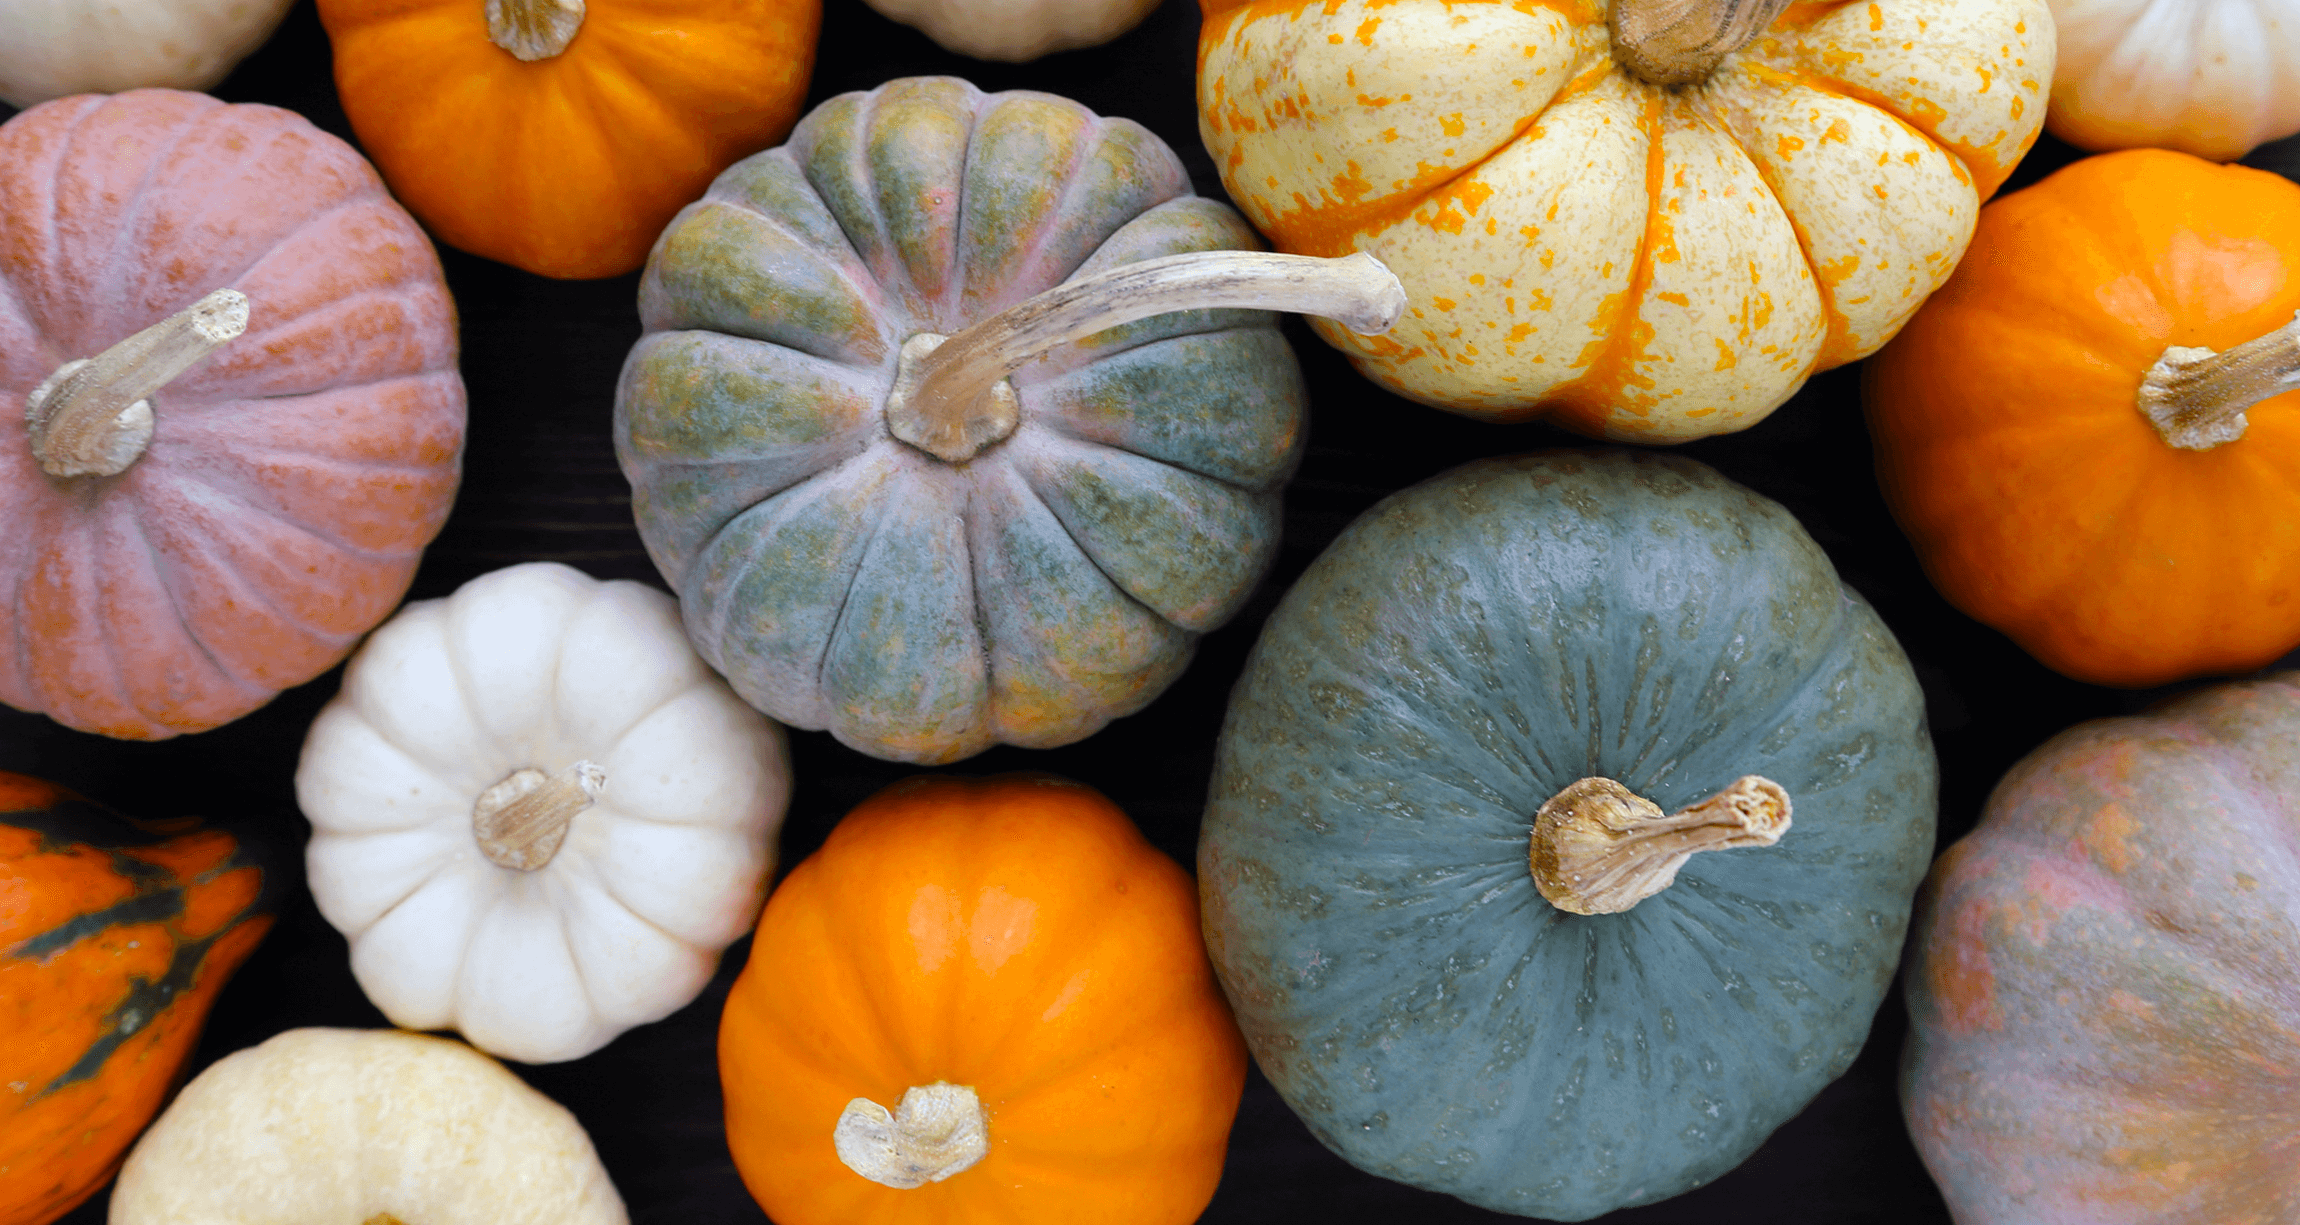 Proven Health Benefits of Pumpkins + 9 Truly Healthy Pumpkin Recipes (That Taste Delicious!)